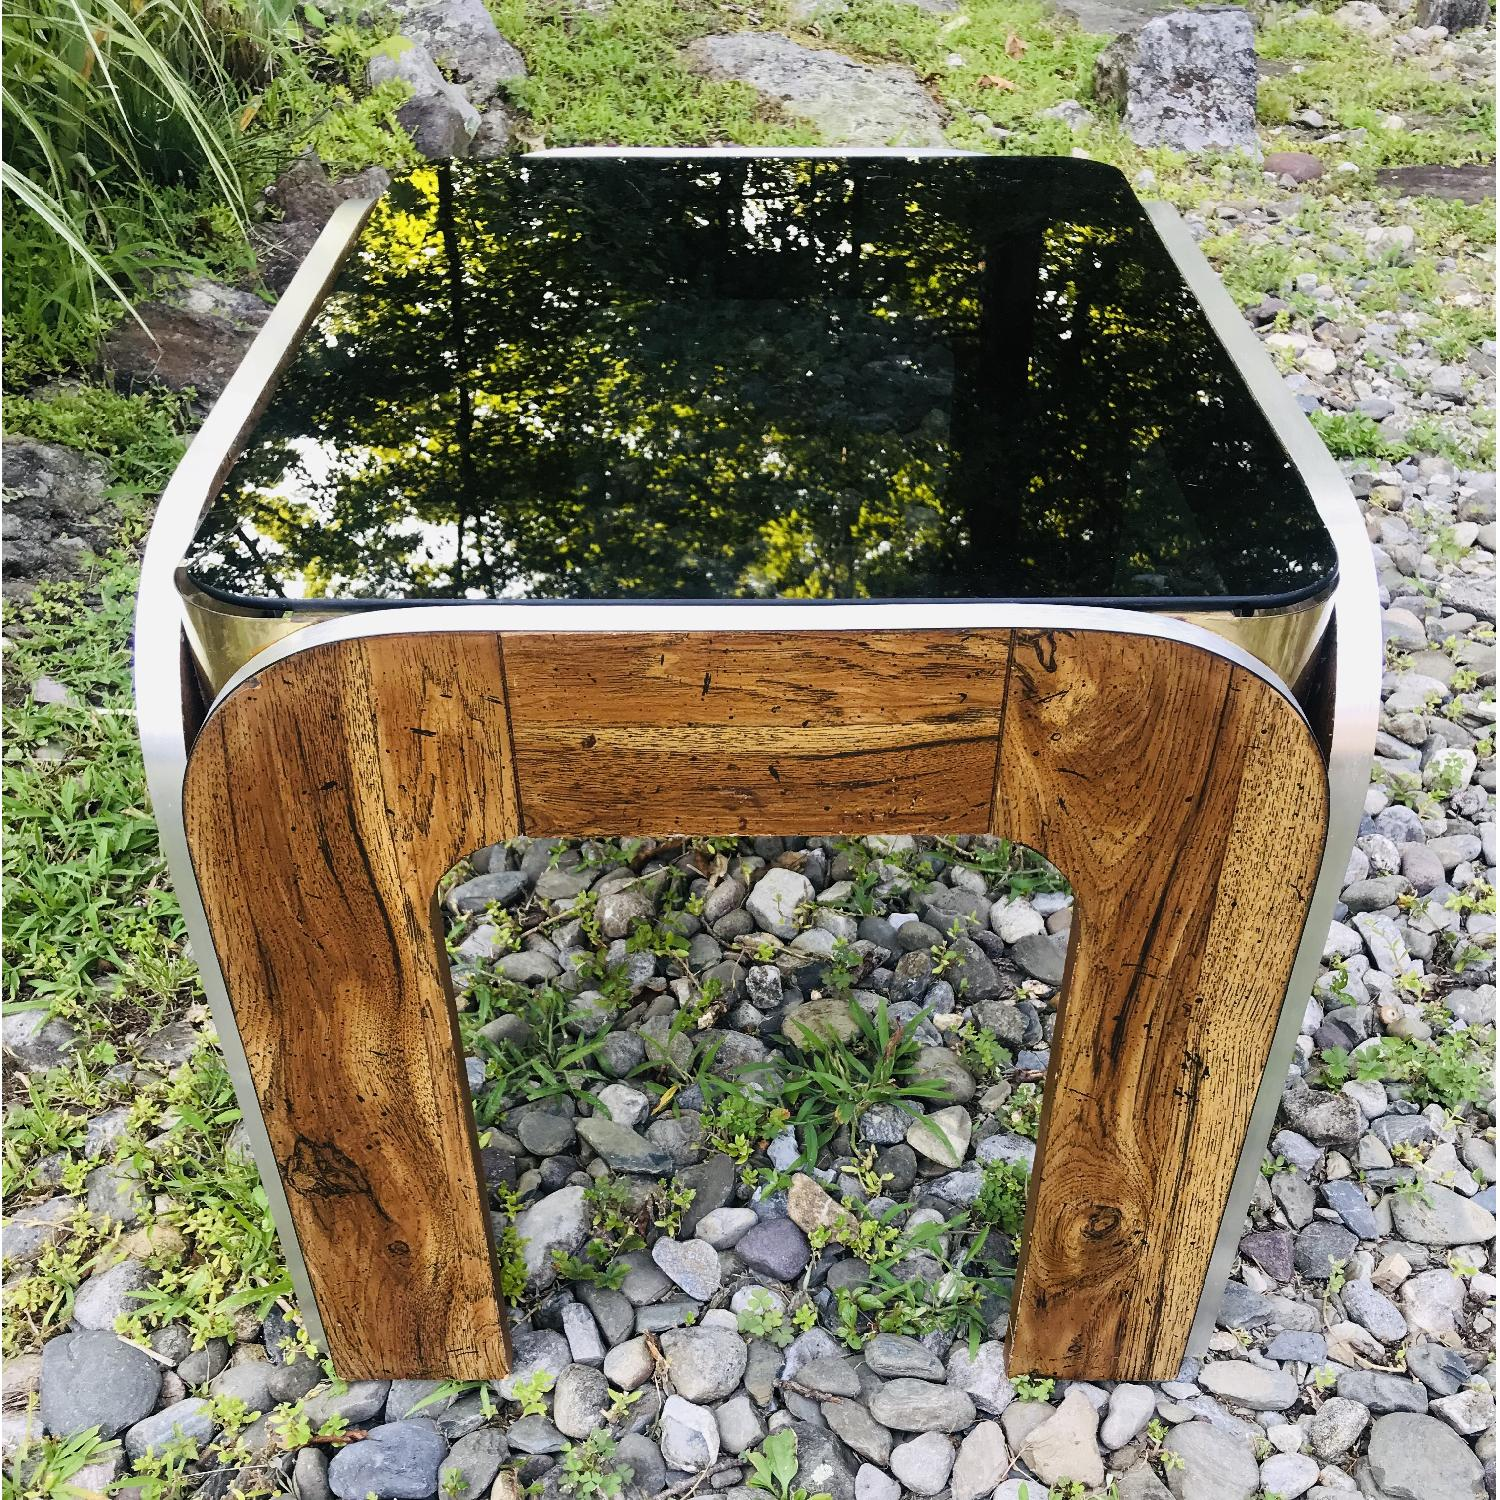 Vinitage Deco Style Coffee Table w/ Smoked Glass Top - image-5